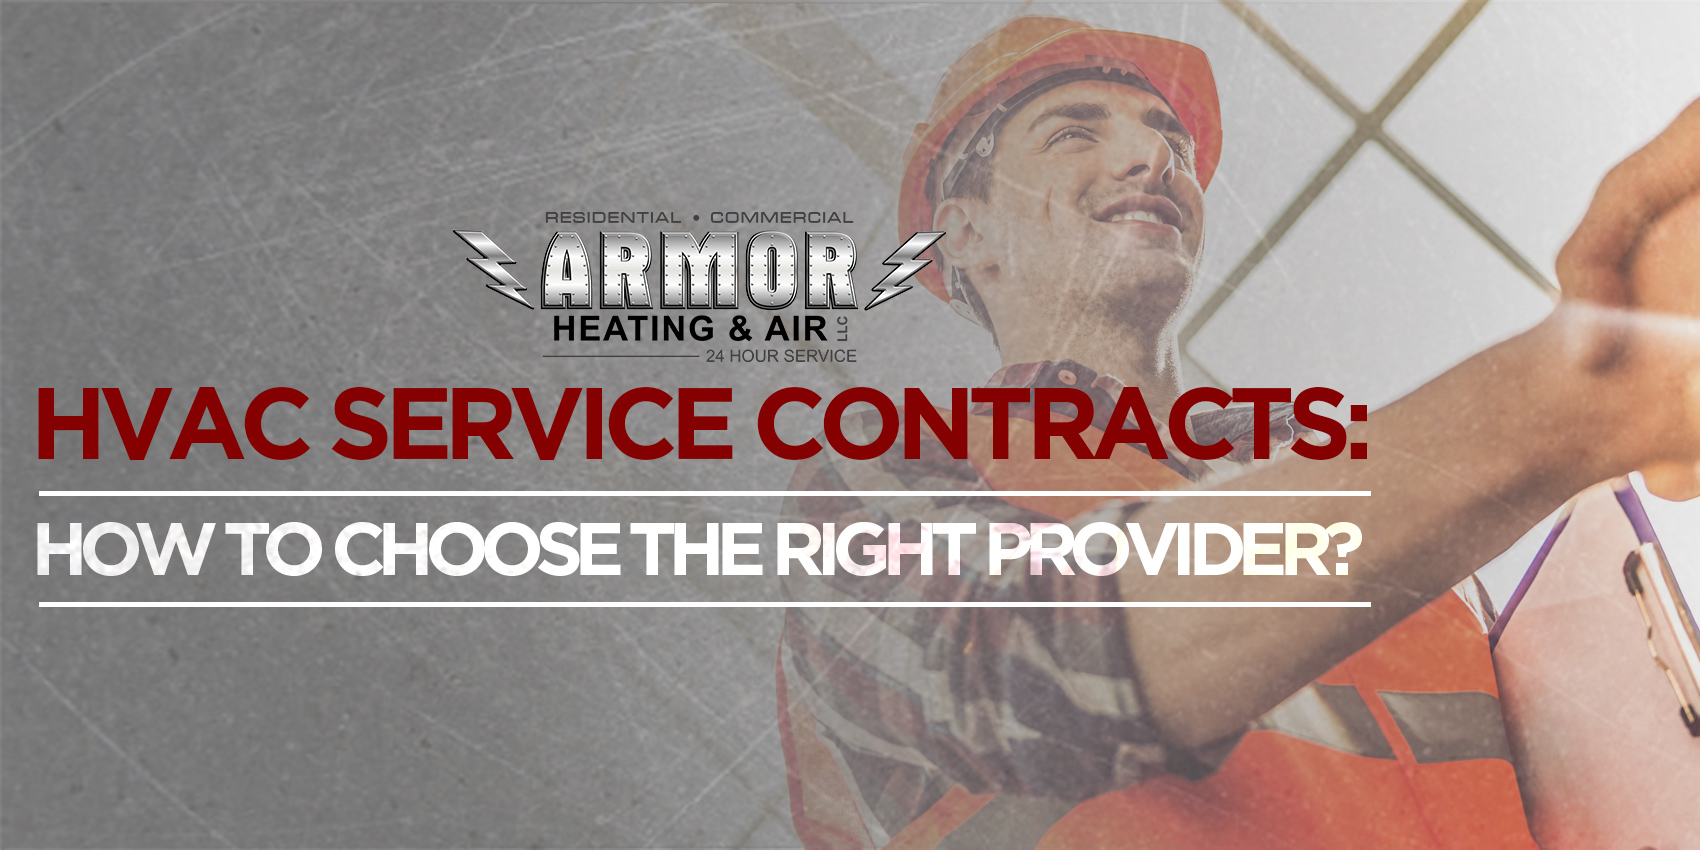 HVAC Service Contracts: How to Choose the Right Provider?